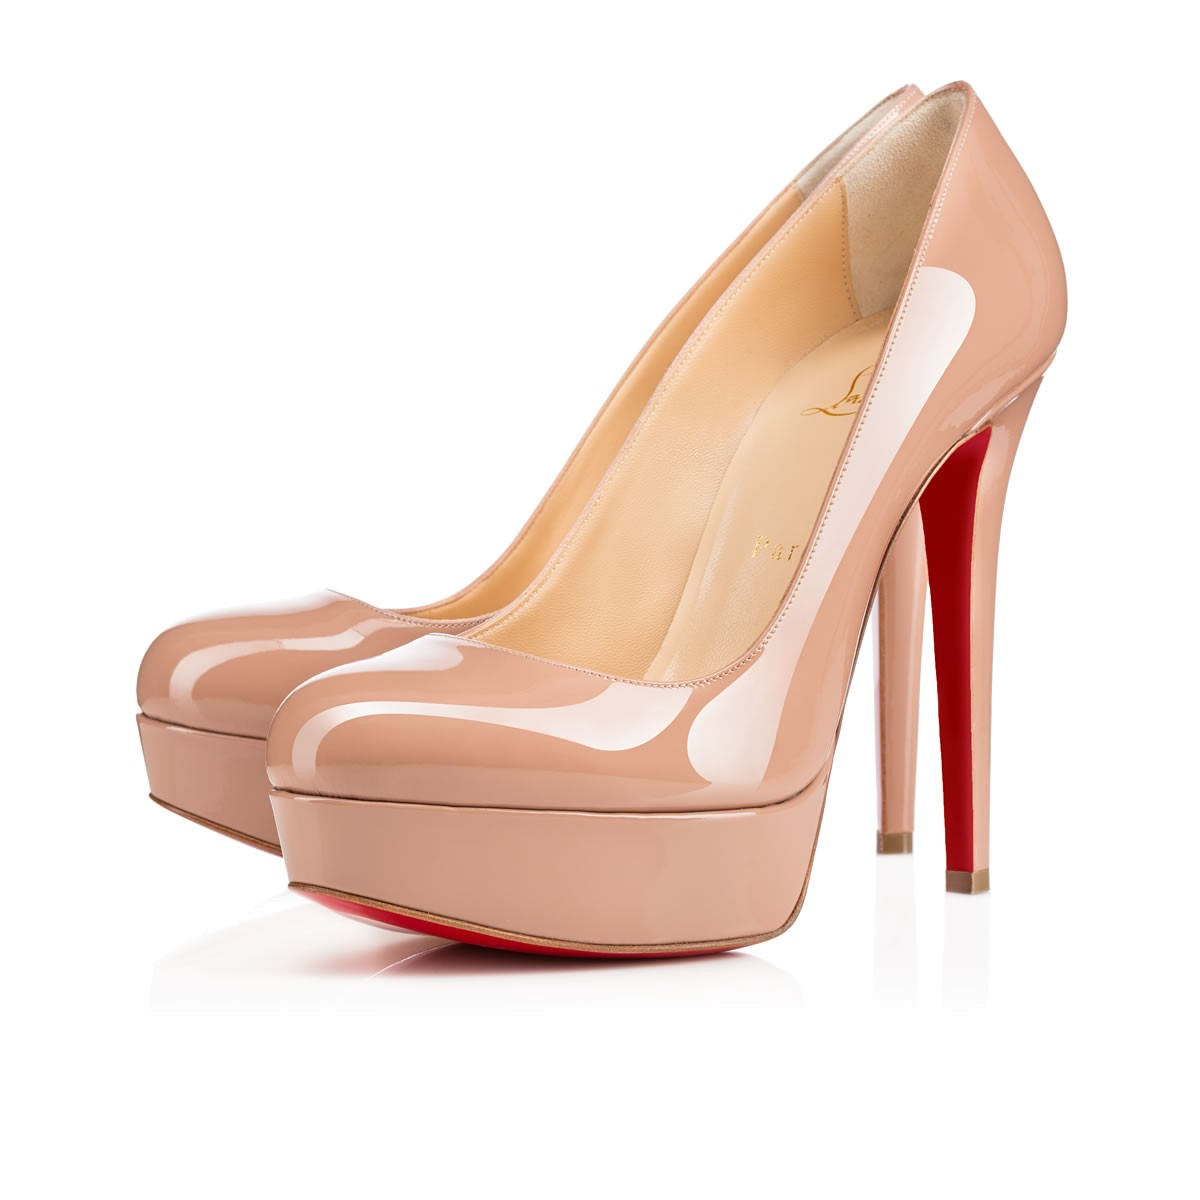 louboutin fall winter 2018 bianca